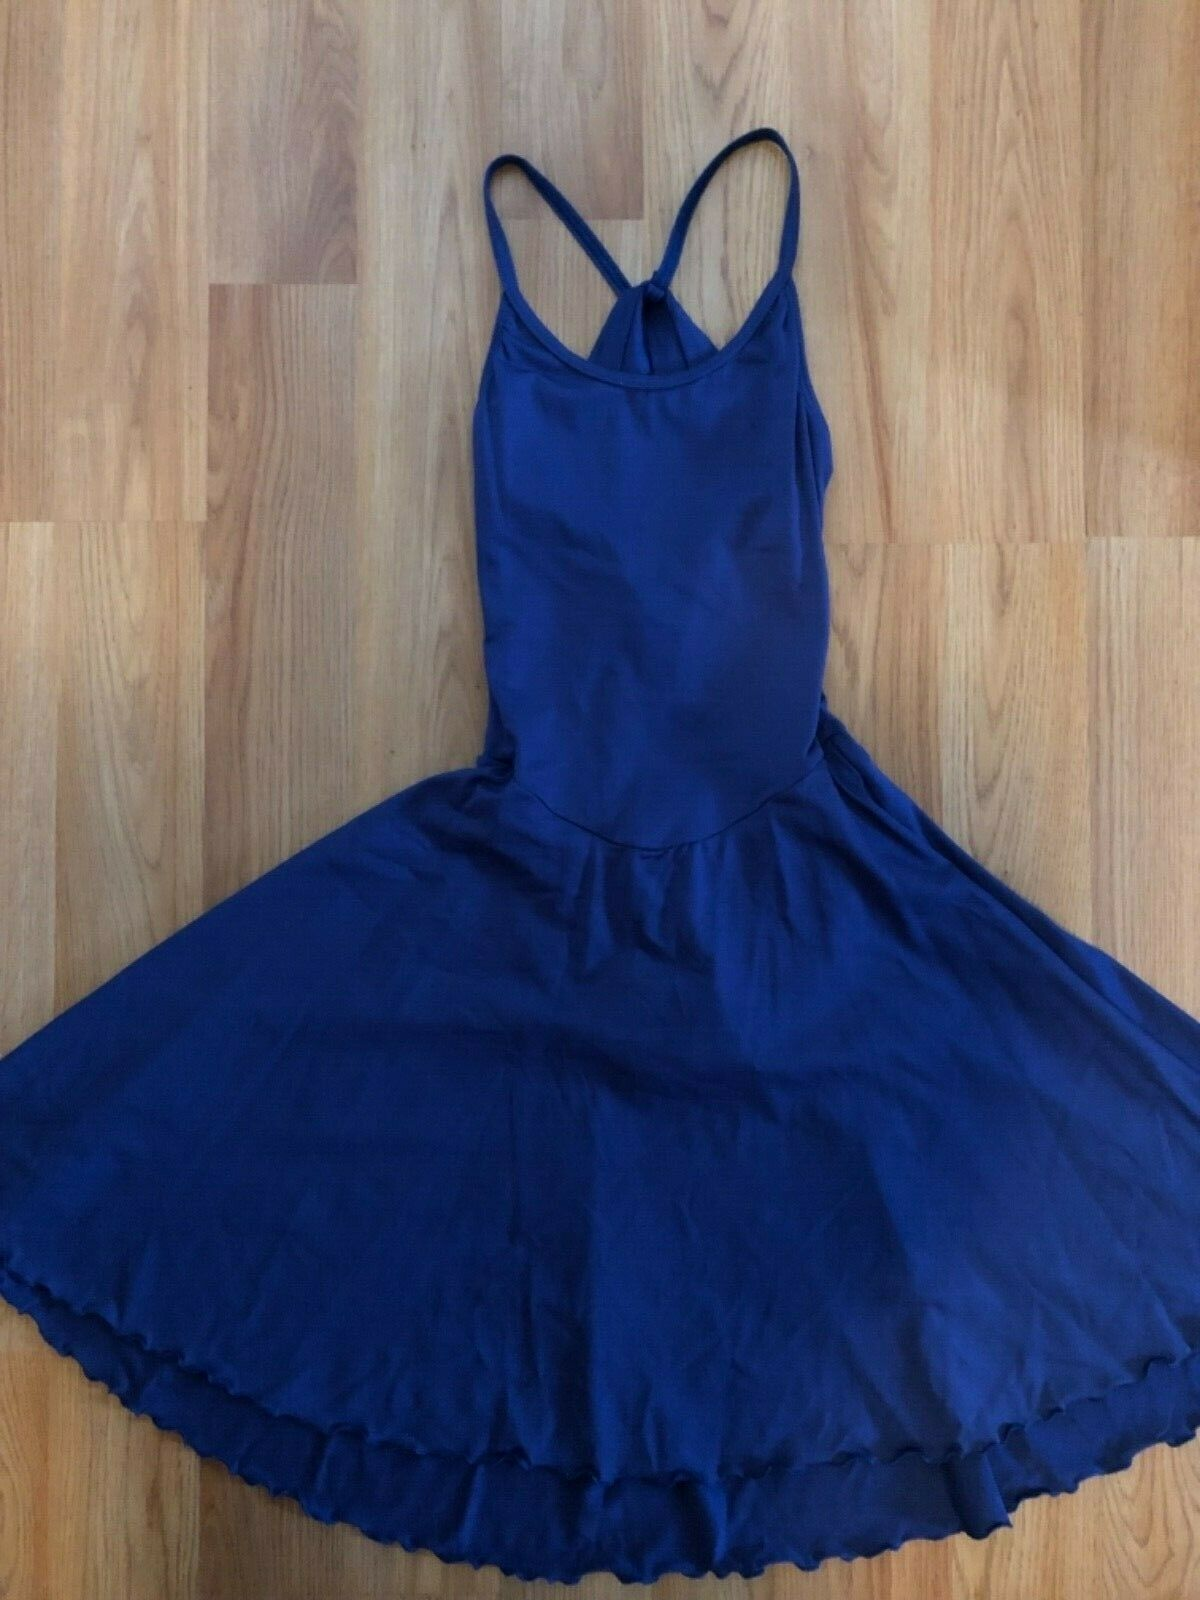 Ice dance dress - ladies adult small - royal bluee